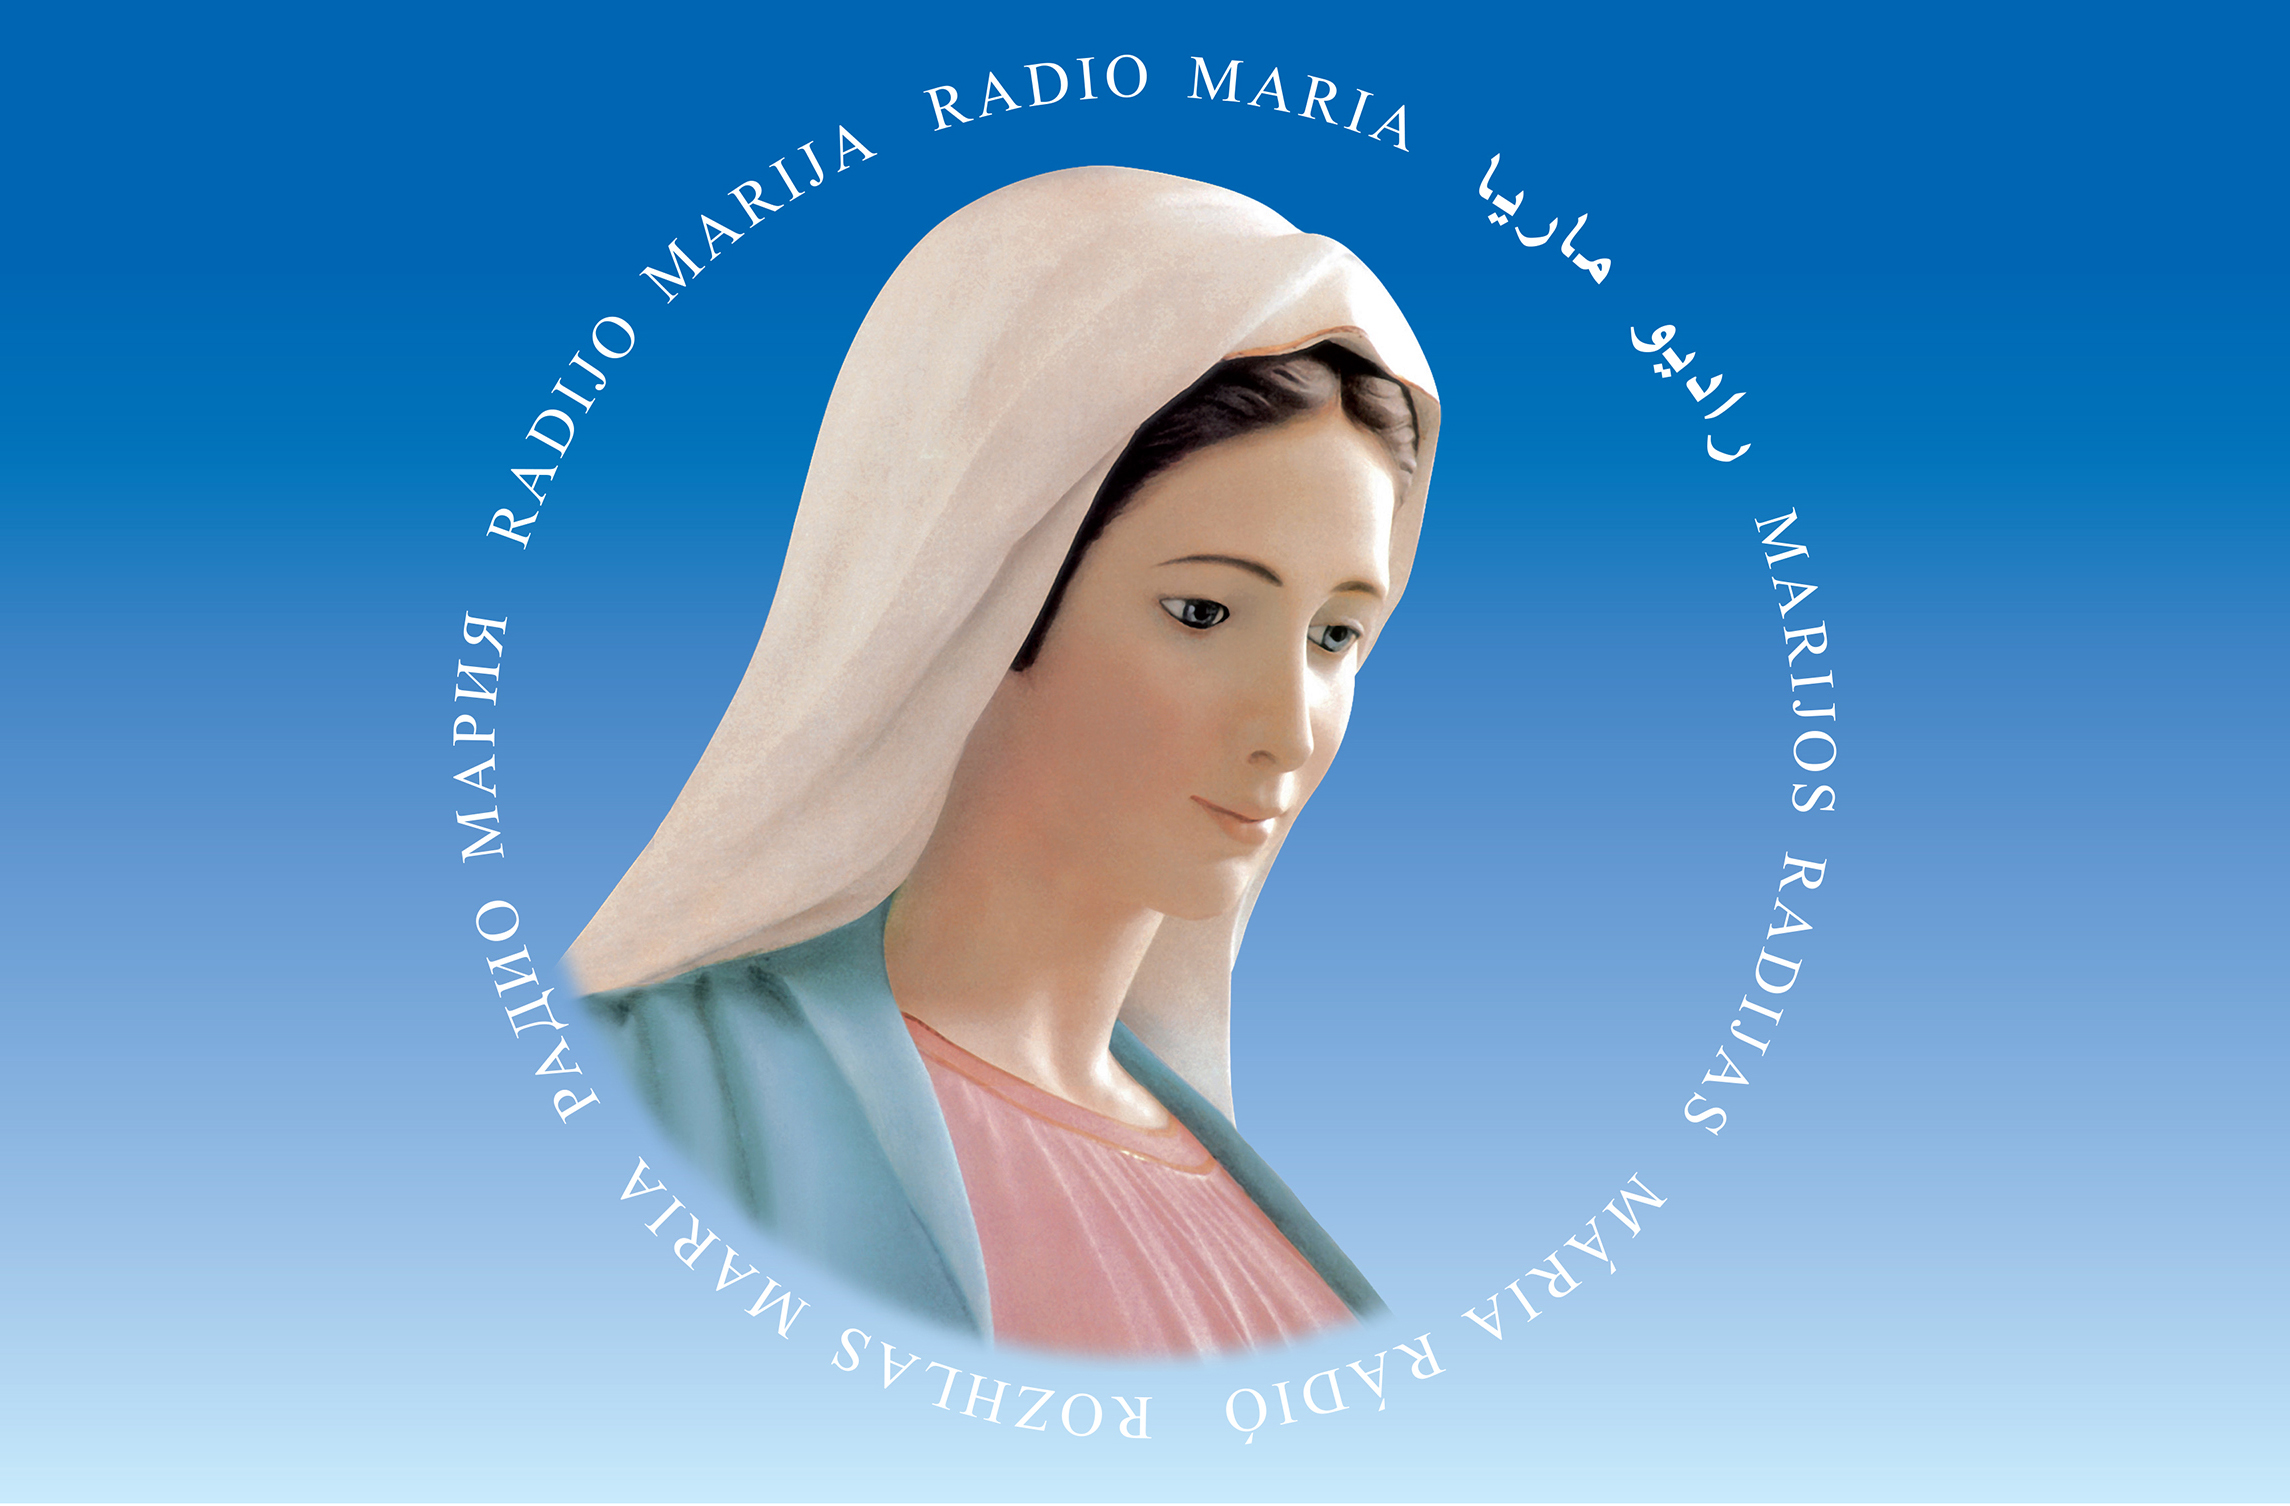 Radio Maria, a radio becoming integral part of our families